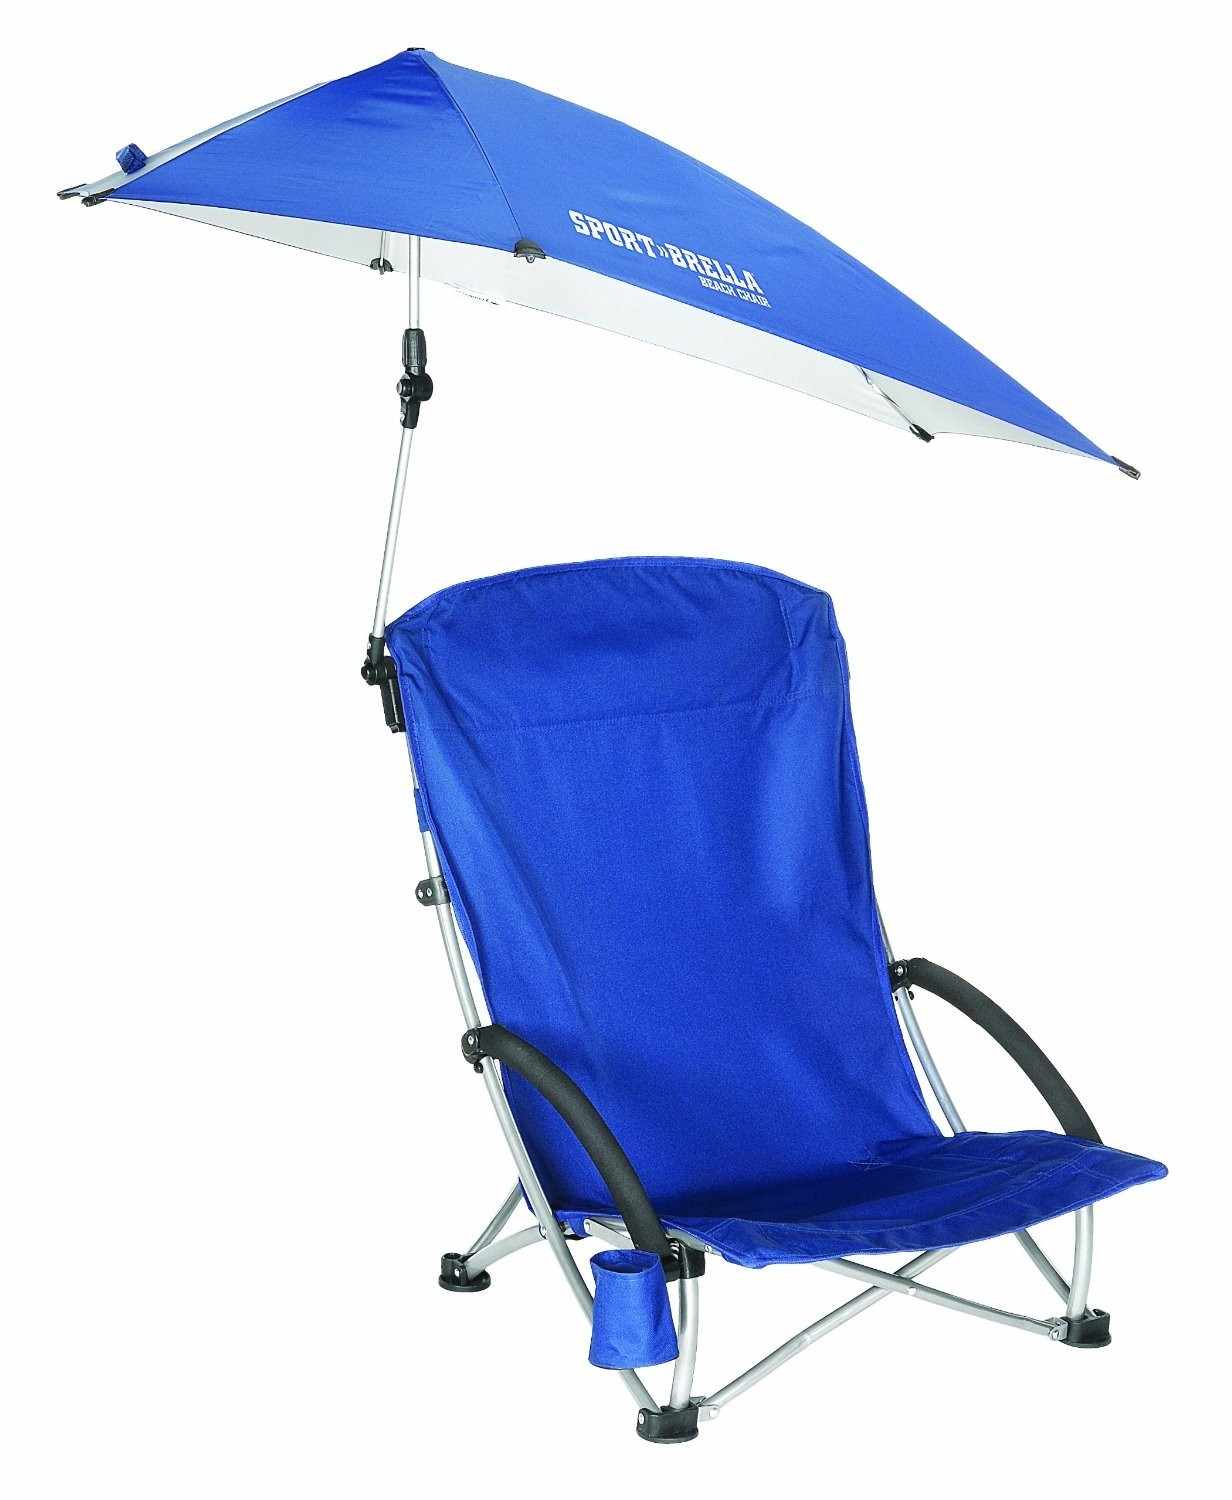 Portable beach chairs lightweight 1  sc 1 st  Foter & Portable Beach Chairs Lightweight - Foter